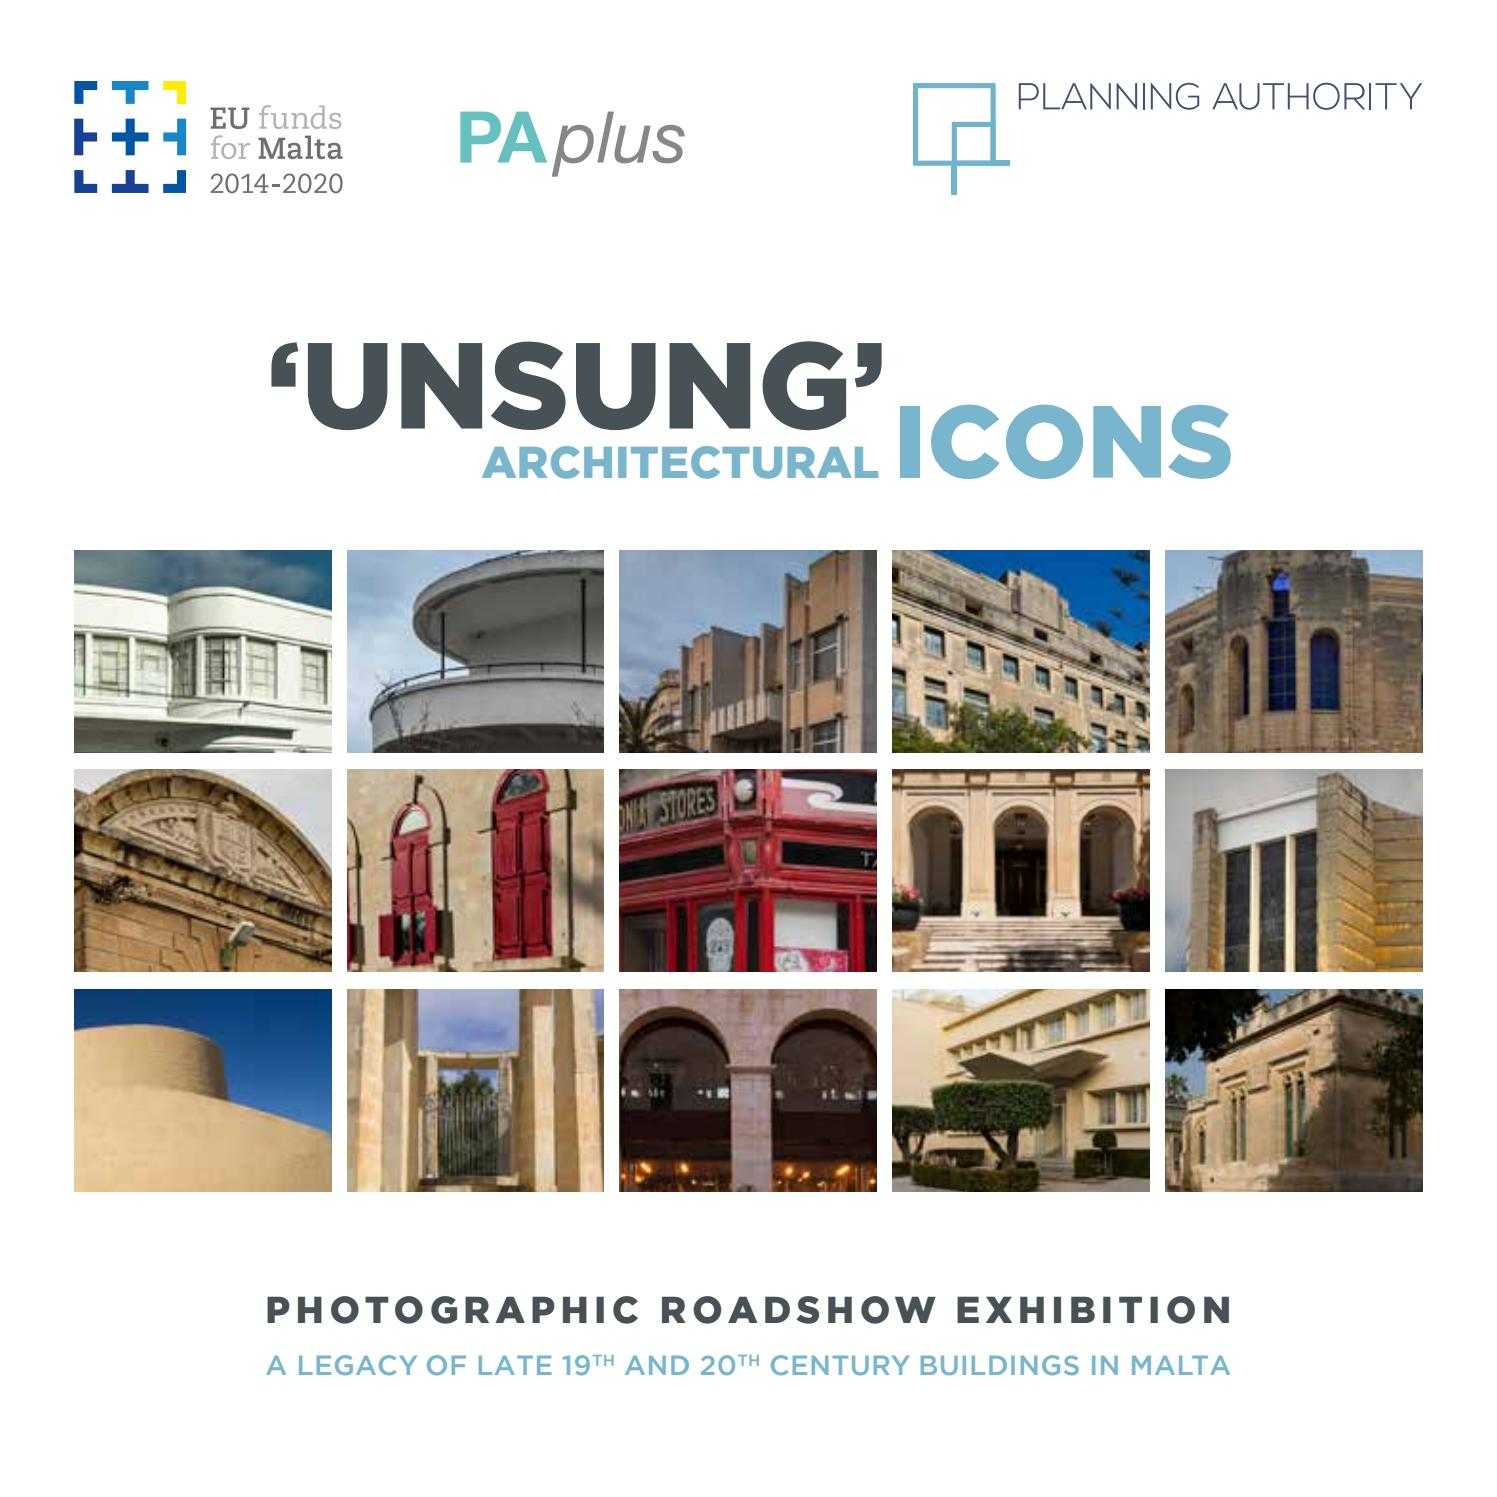 Unsung' Architectural Icons in Malta by Planning Authority ... on maintenance icons, books icons, lifestyle icons, mechanical icons, geotechnical icons, contemporary icons, astrological icons, consulting icons, square business icons, victorian icons, drafting icons, interior icons, nature icons, automation icons, technical icons, urban design icons, general icons, corporate icons, cultural icons, political icons,